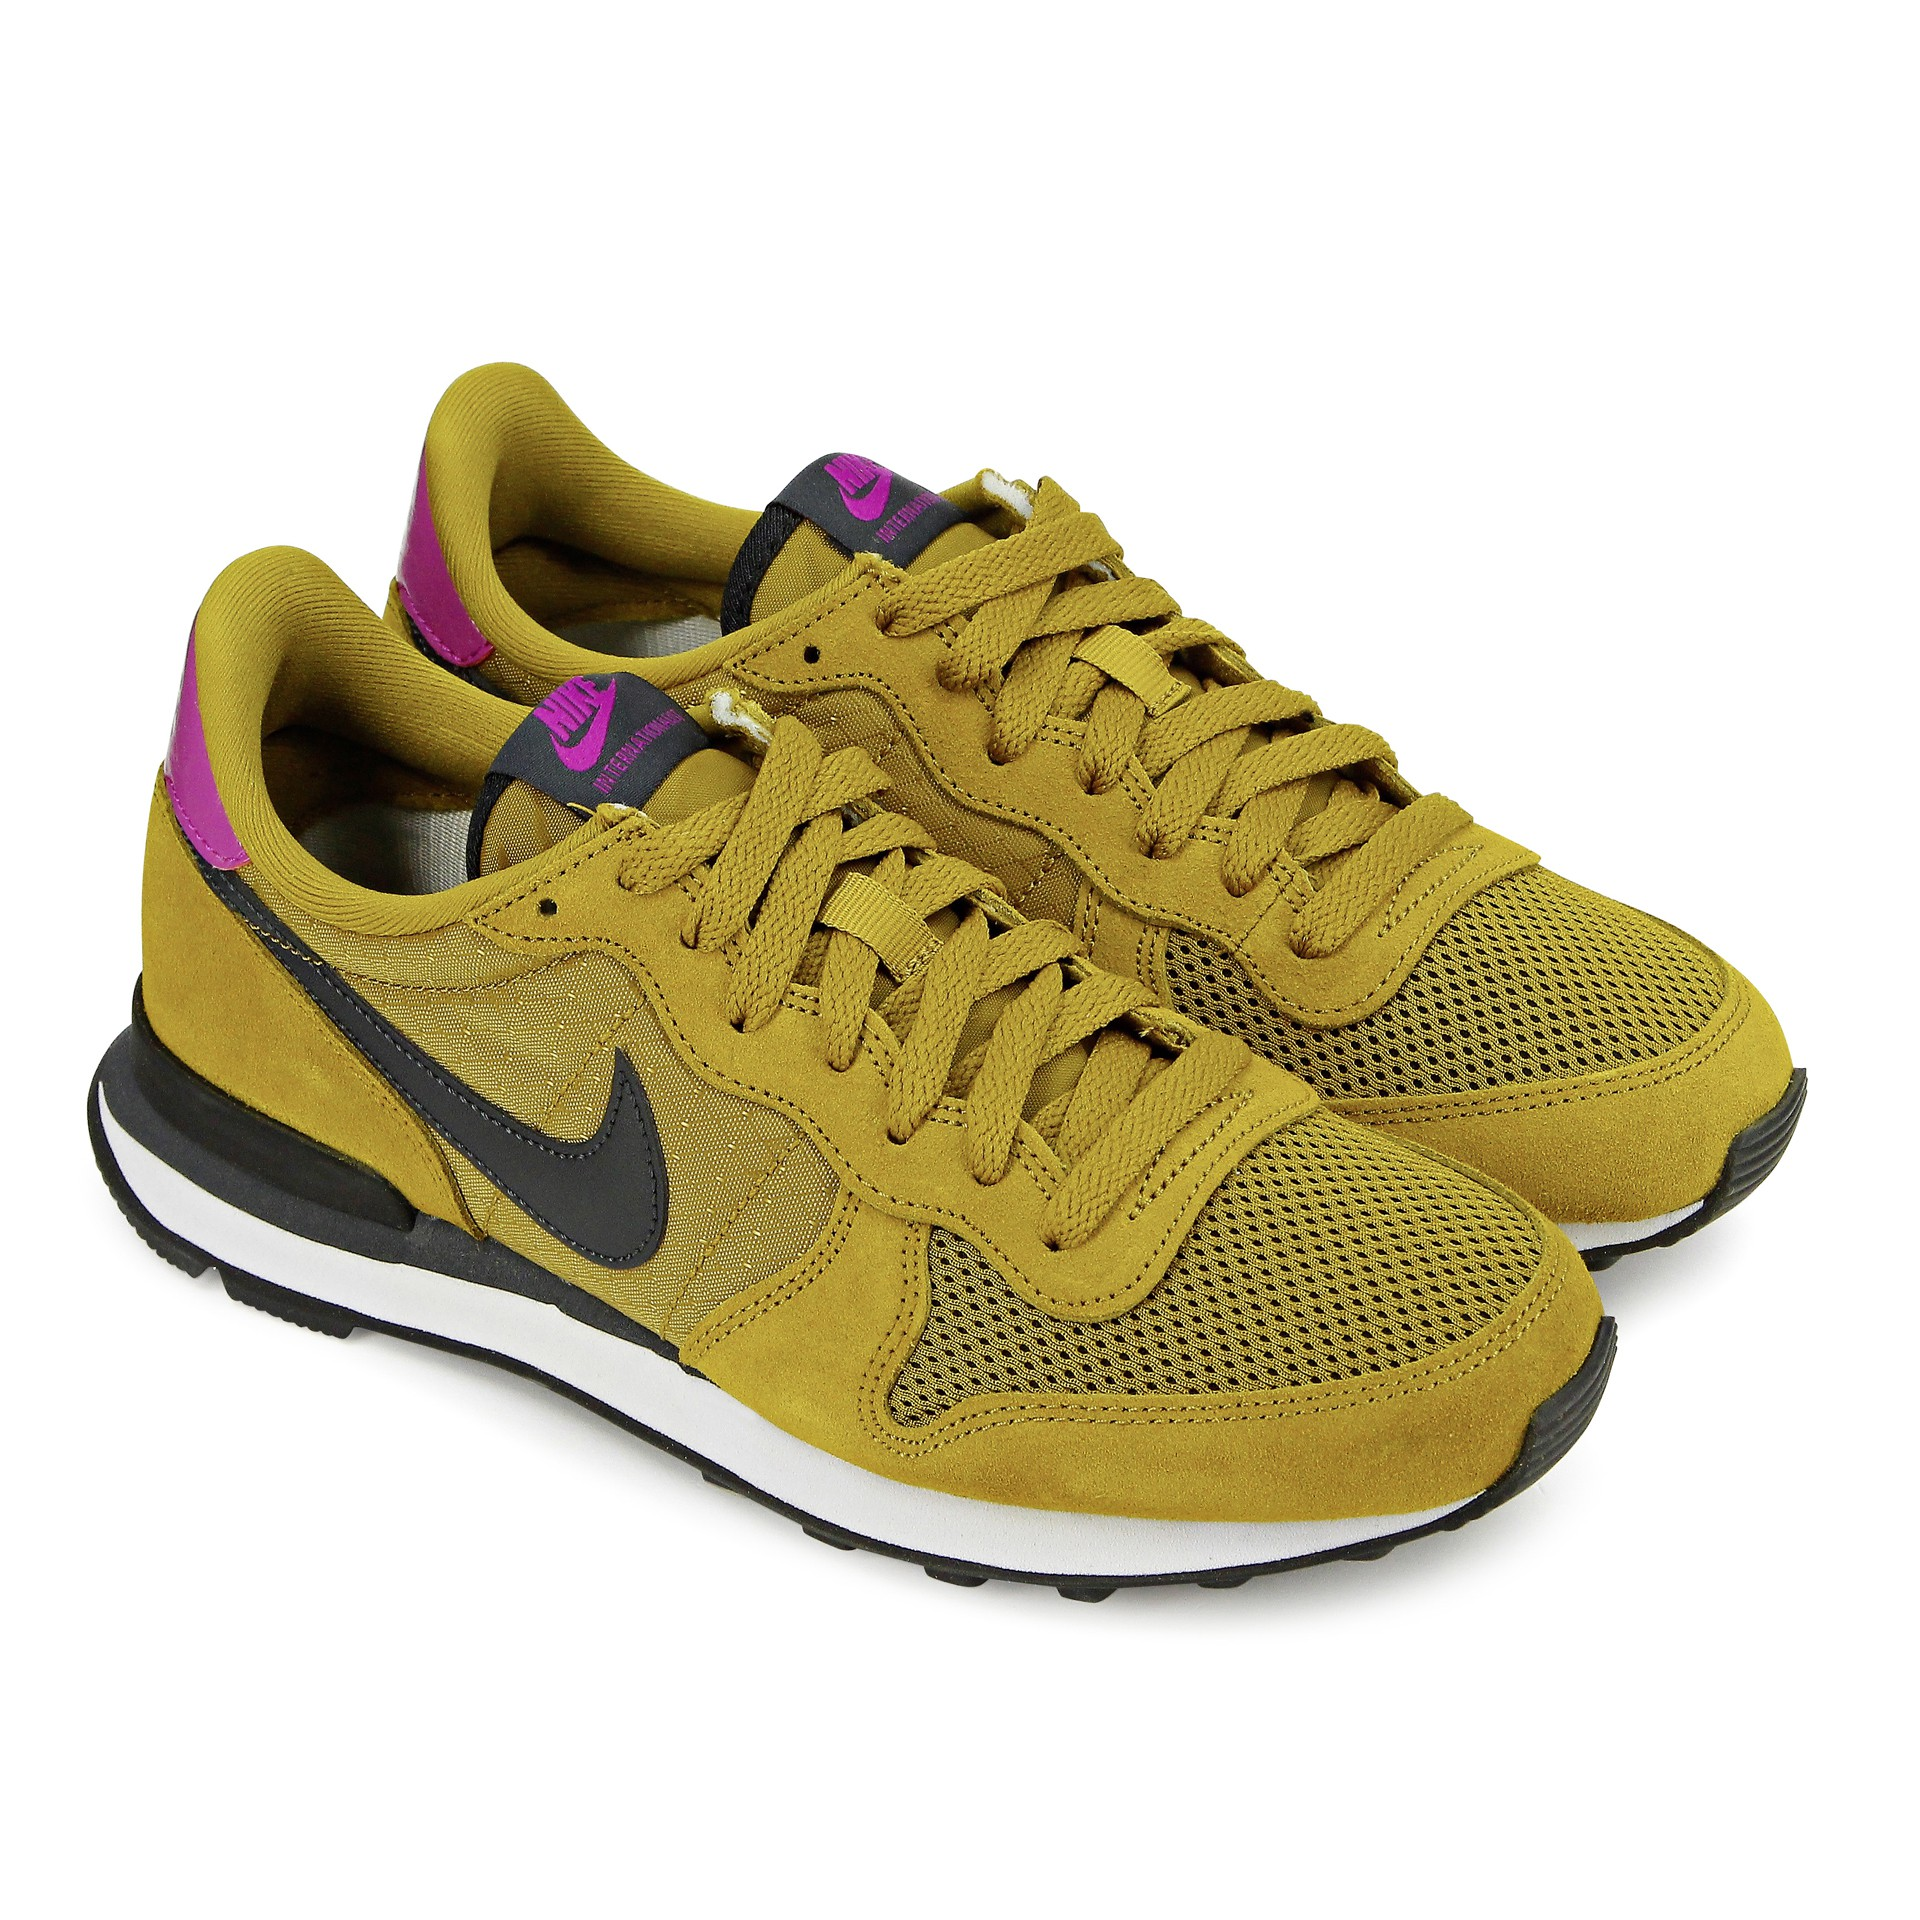 finest selection 24134 9b963 nike internationalist pas cher femme internationalist nike femme